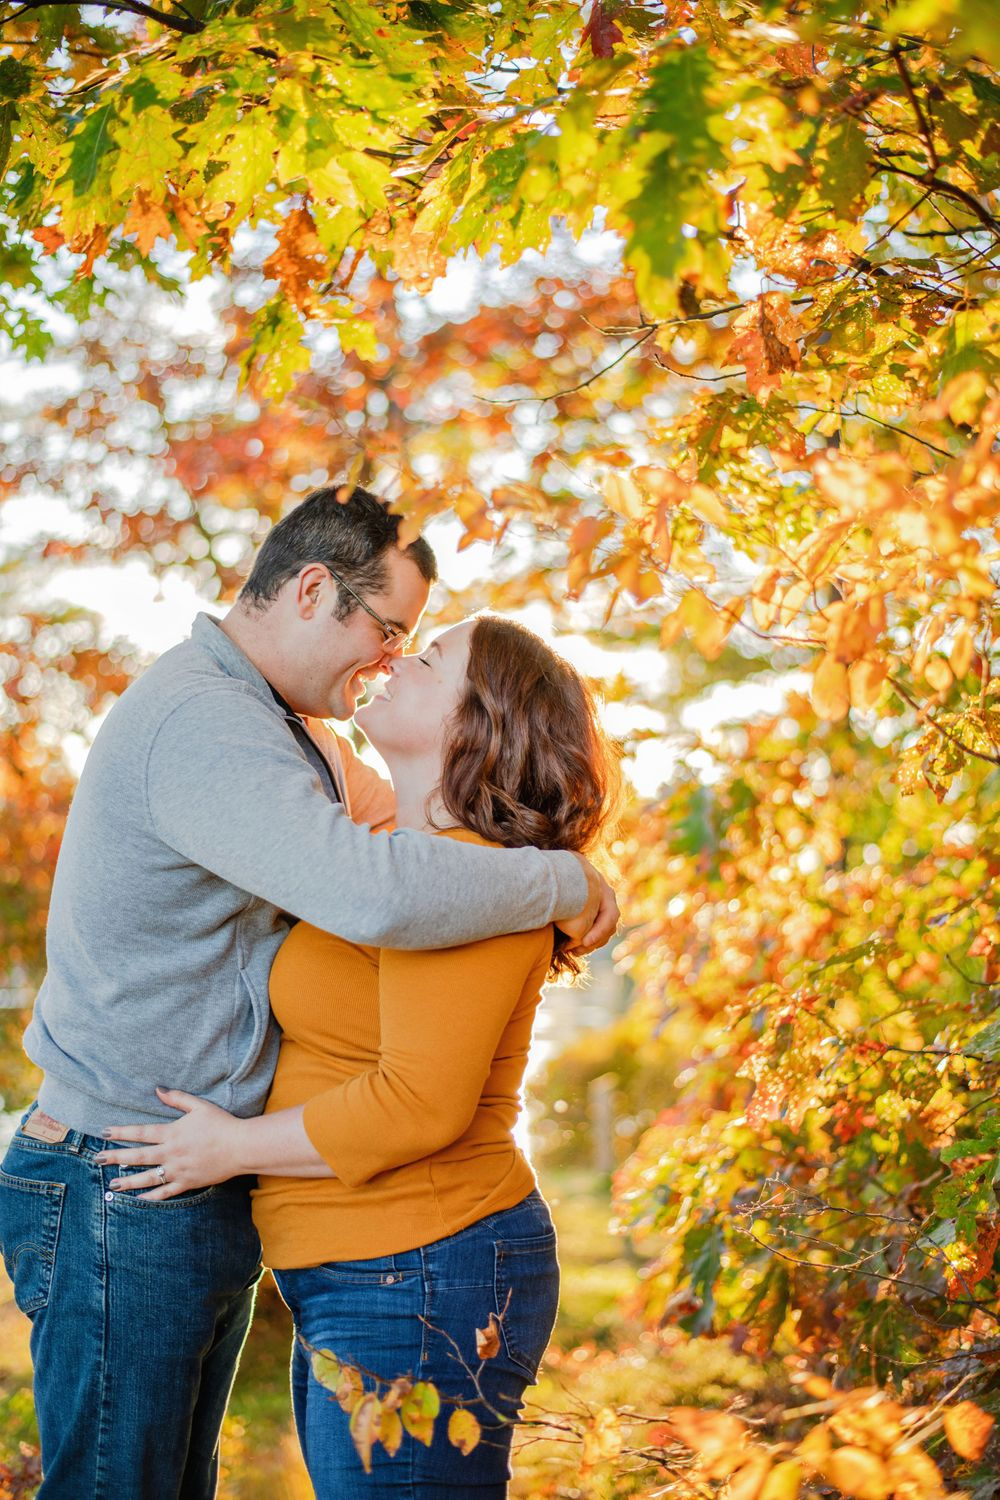 Kingston Couples Photography - Couple kissing in the fall leaves